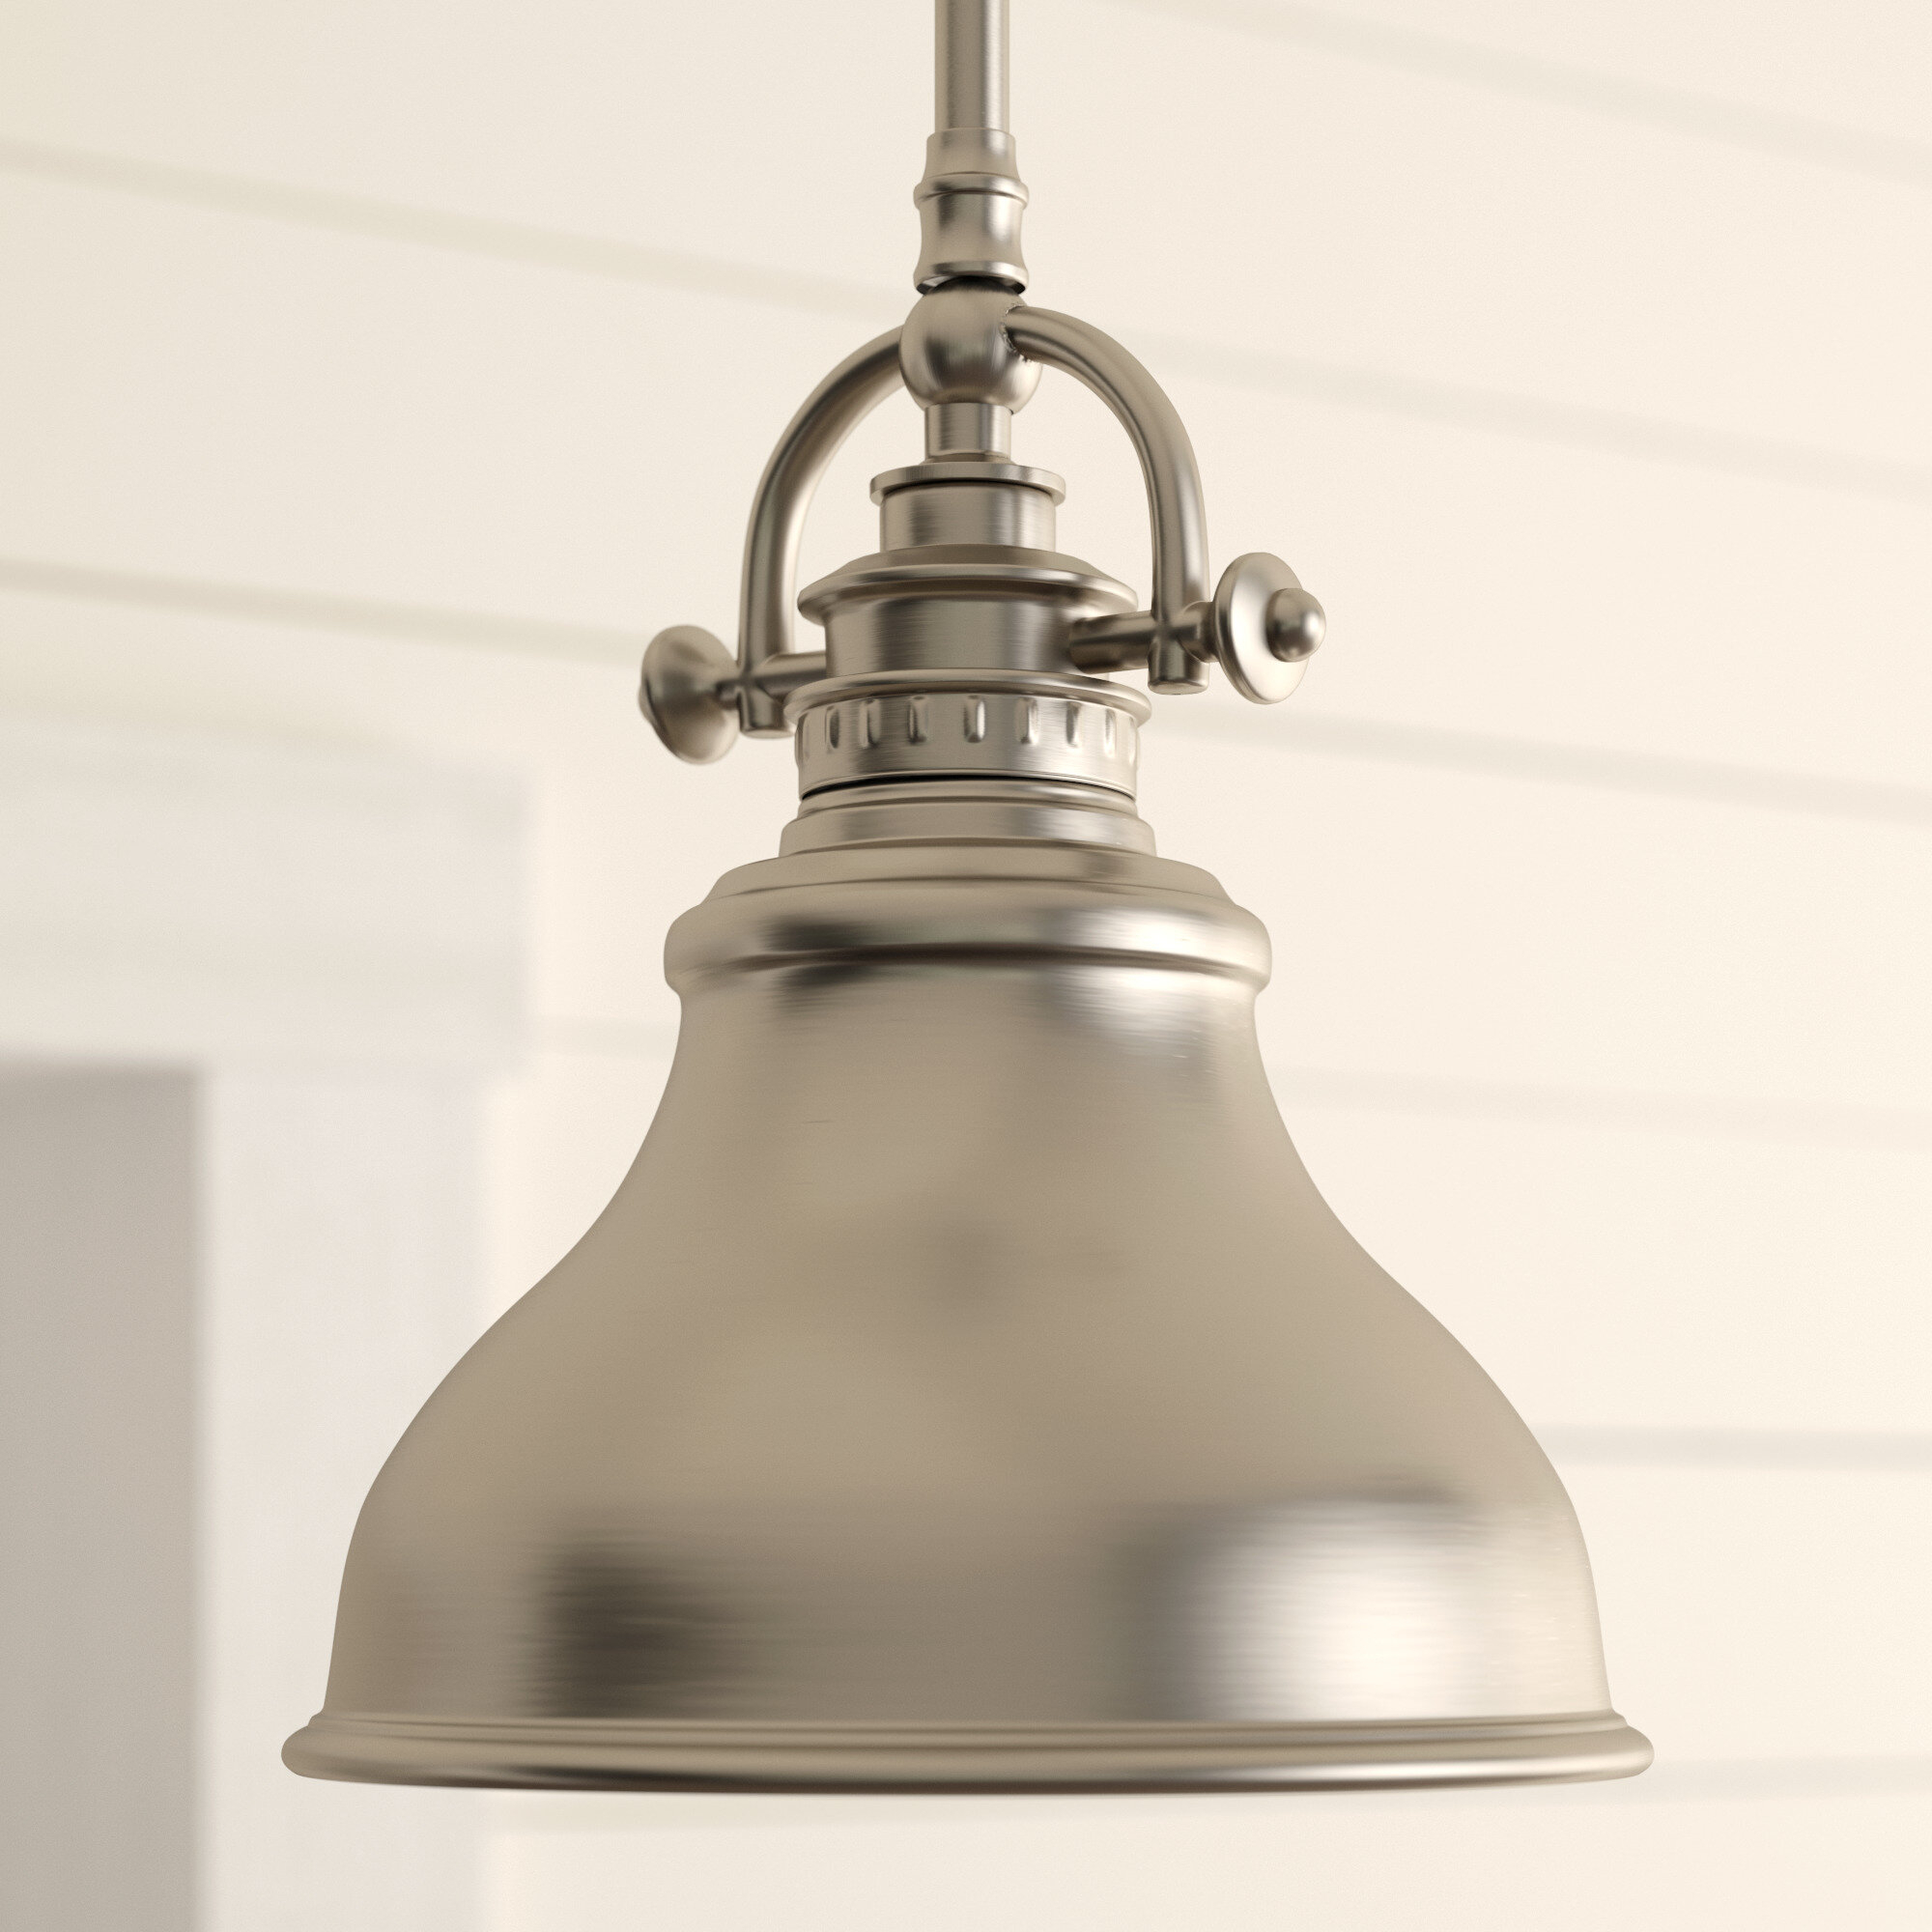 Beachcrest Home Mueller 1 Light Single Dome Pendant Intended For Mueller 1 Light Single Dome Pendants (View 5 of 30)